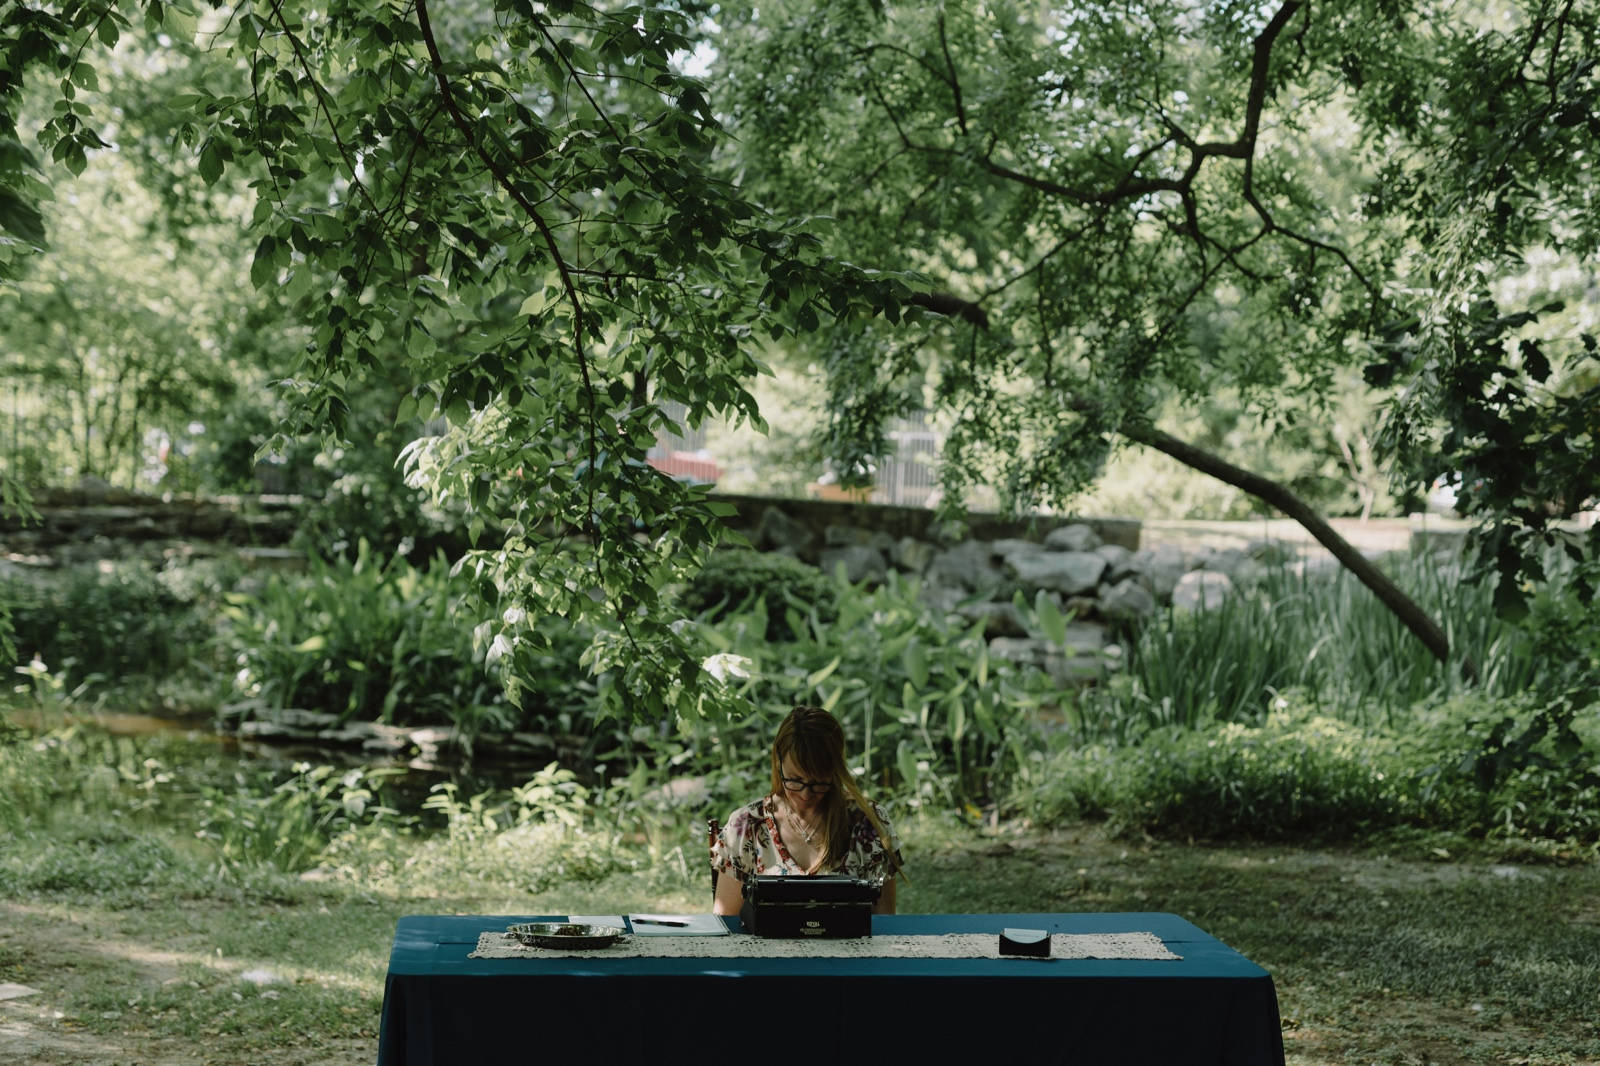 Jena Kirkpatrick writing poems for hire at an Austin wedding at the Umlauf Sculpture Garden